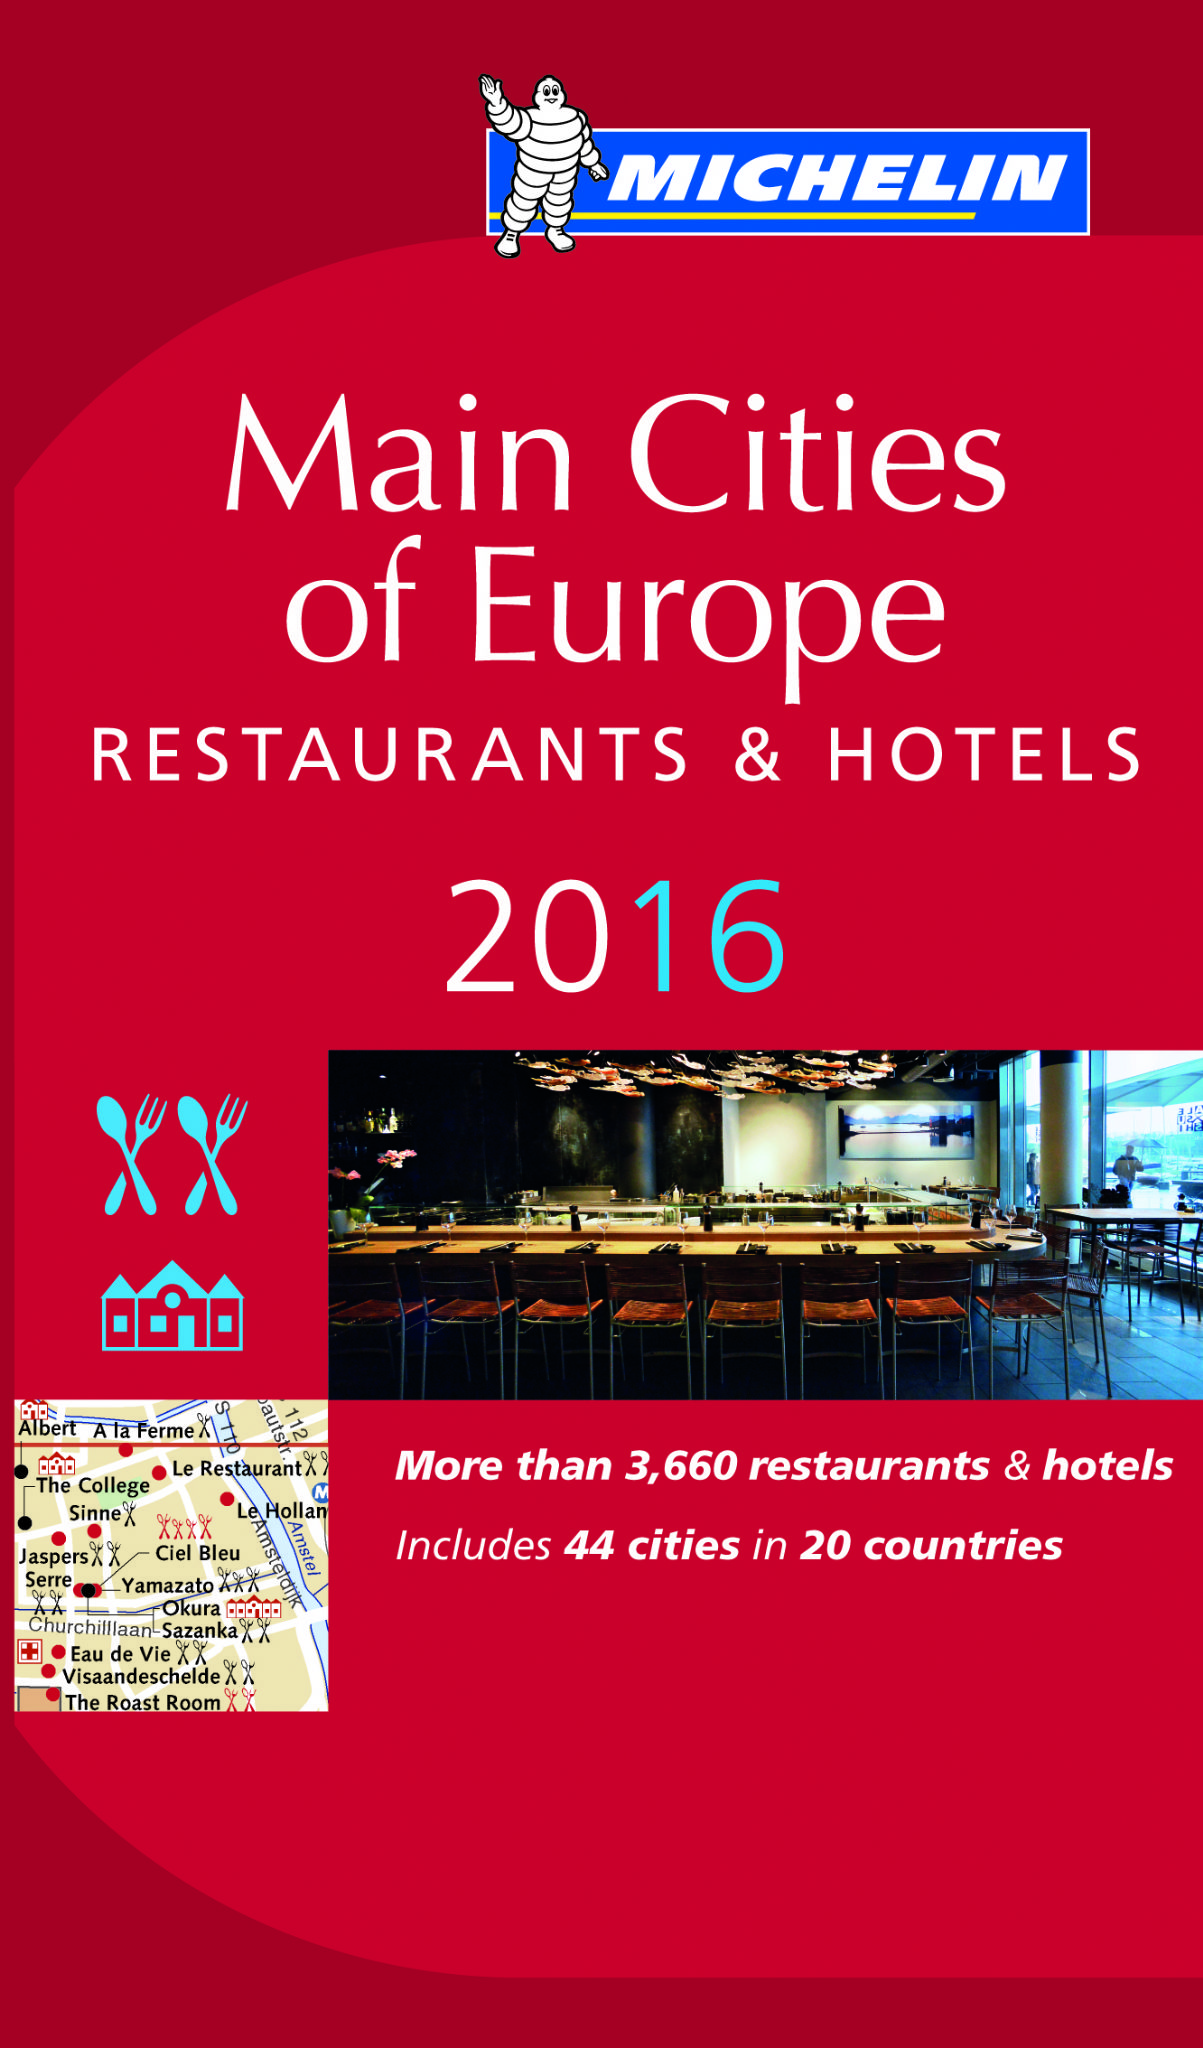 main-cities-of-europe-2016-michelin-guide-1702-p